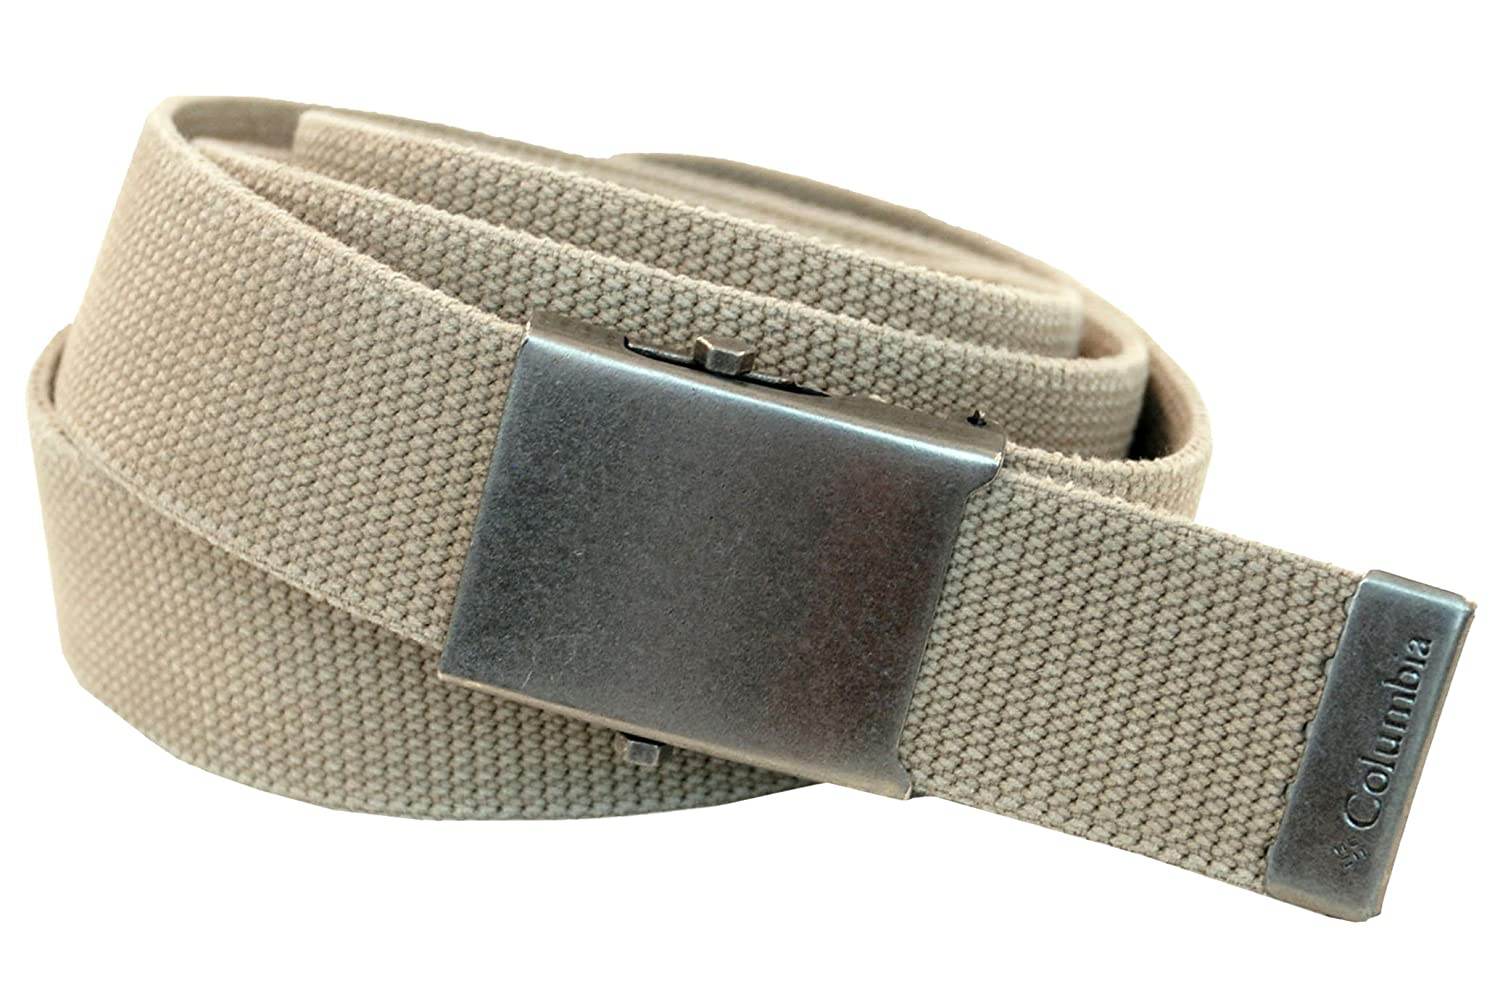 belt, men's belt, stylish belt, belt buckles, stylish buckles, belts, mens belt, western belt, Stylish Belt with Cotton Strap